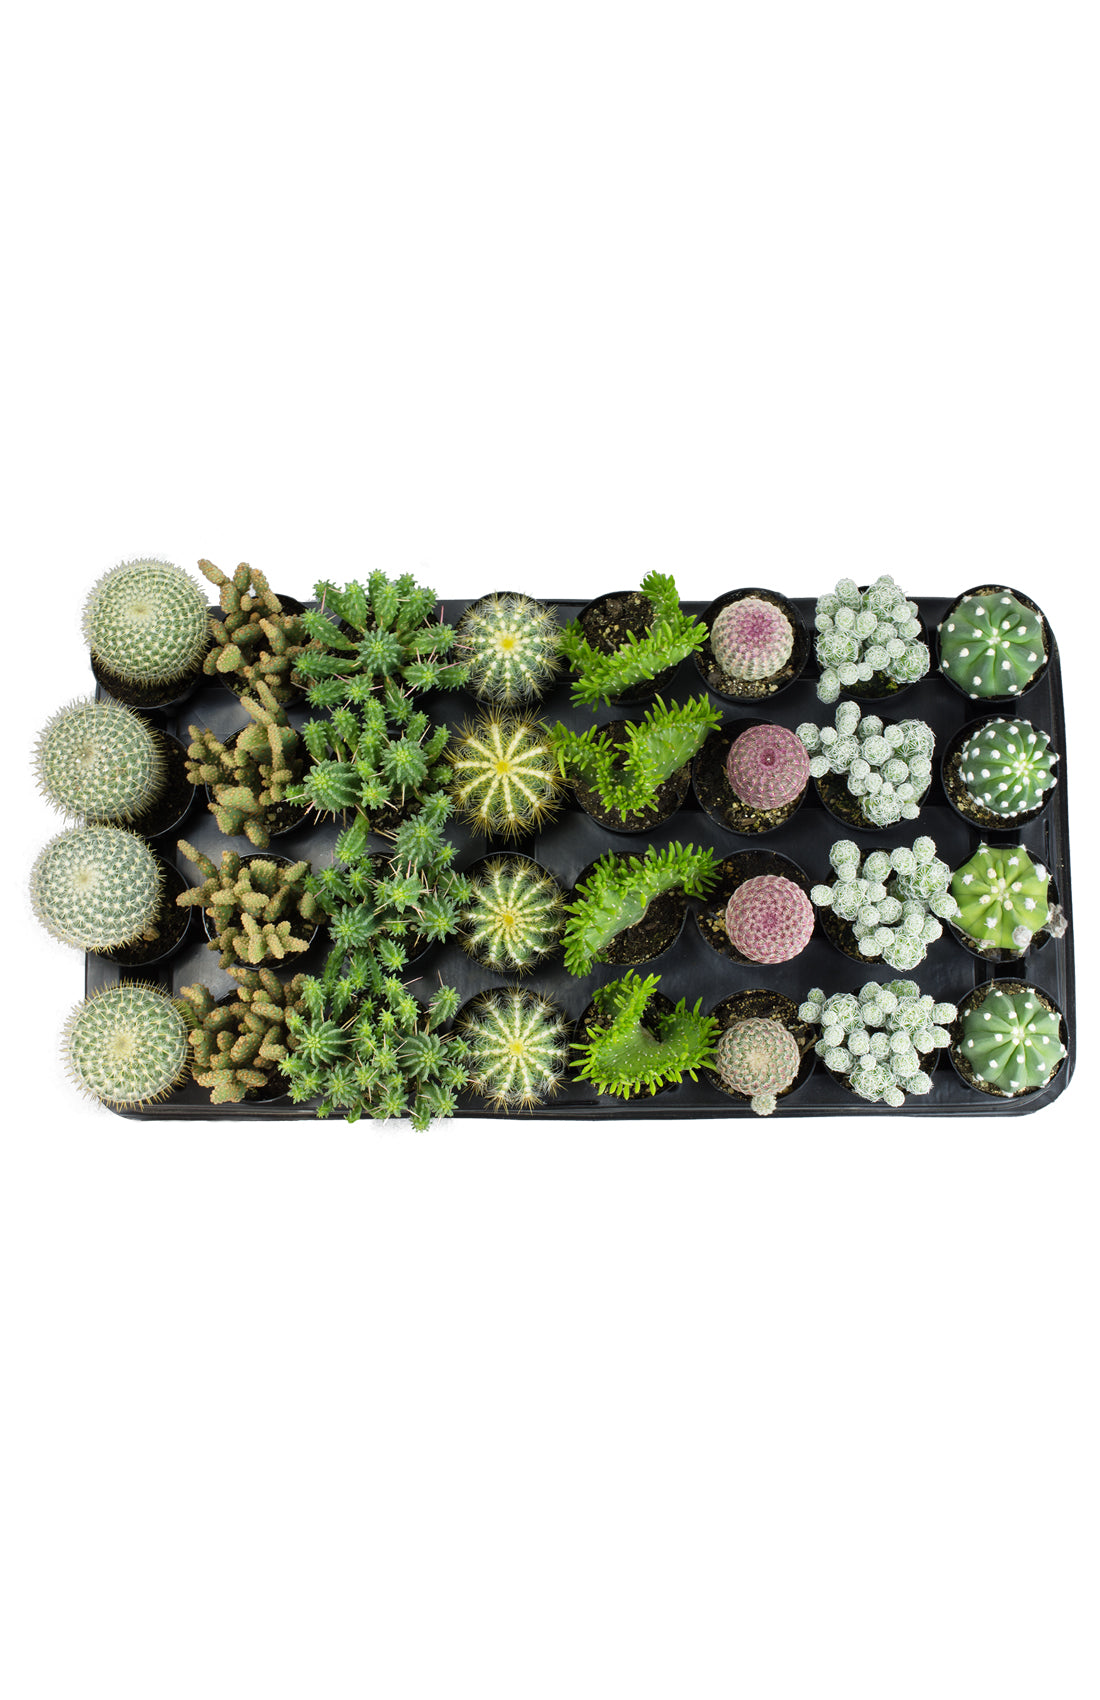 Assorted Cacti Tray